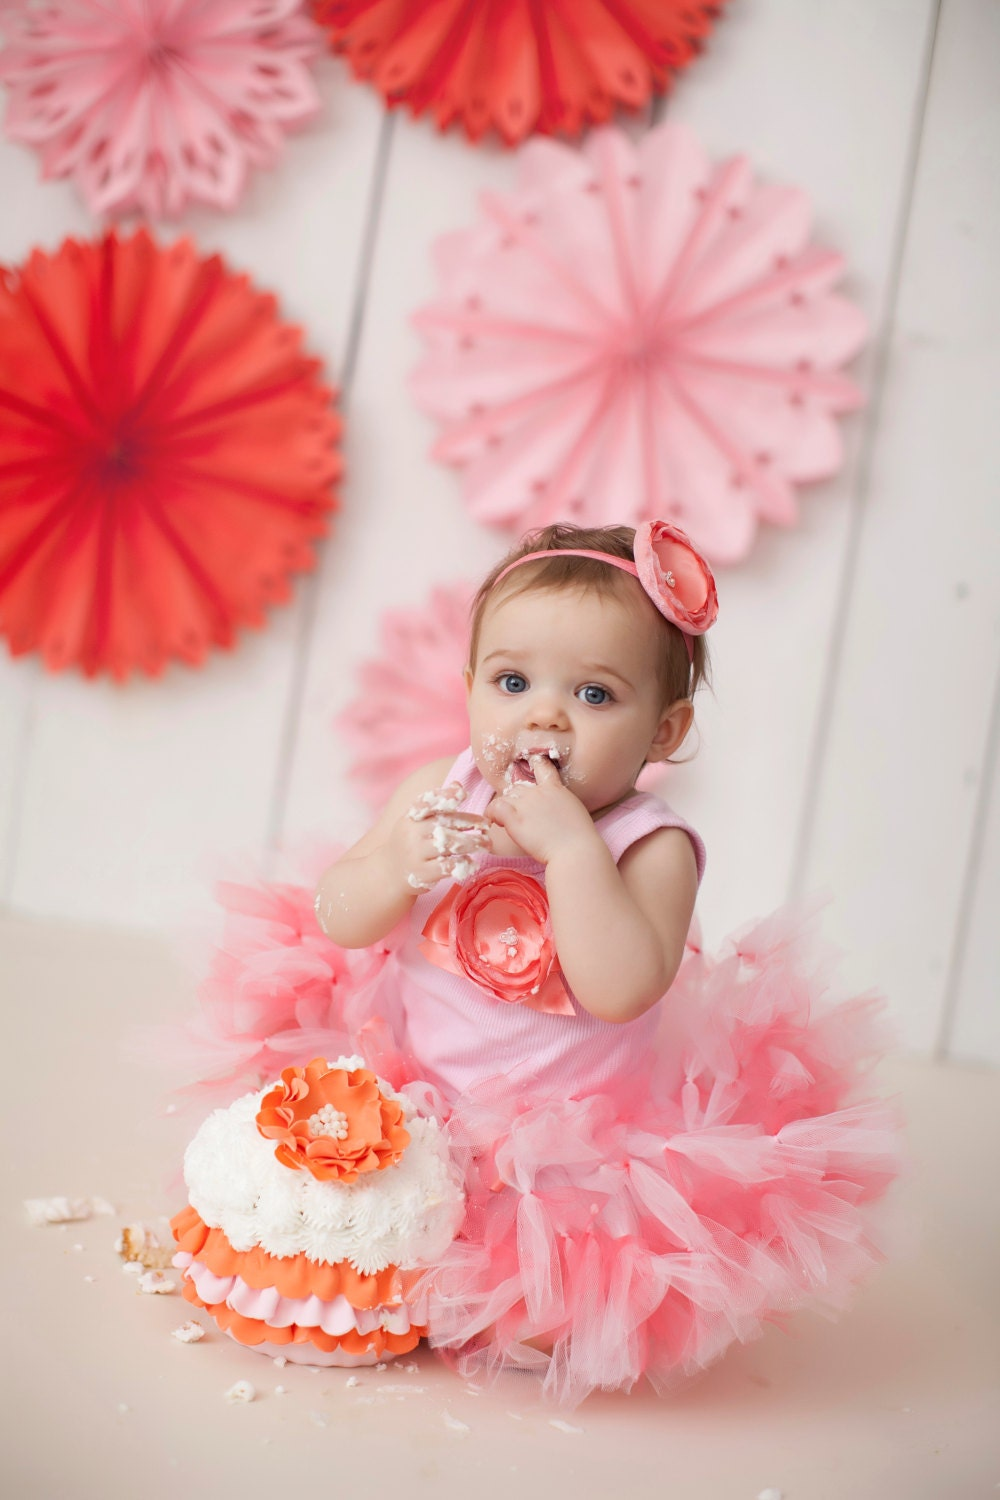 Boutique Birthday Tutu Outfits Birthday Tops & Onesies Whether it's her 1st, 2nd, 3rd, 4th or 5th birthday (yes even a tween or teen), our birthday tutus for girls make quite a statement at any age!